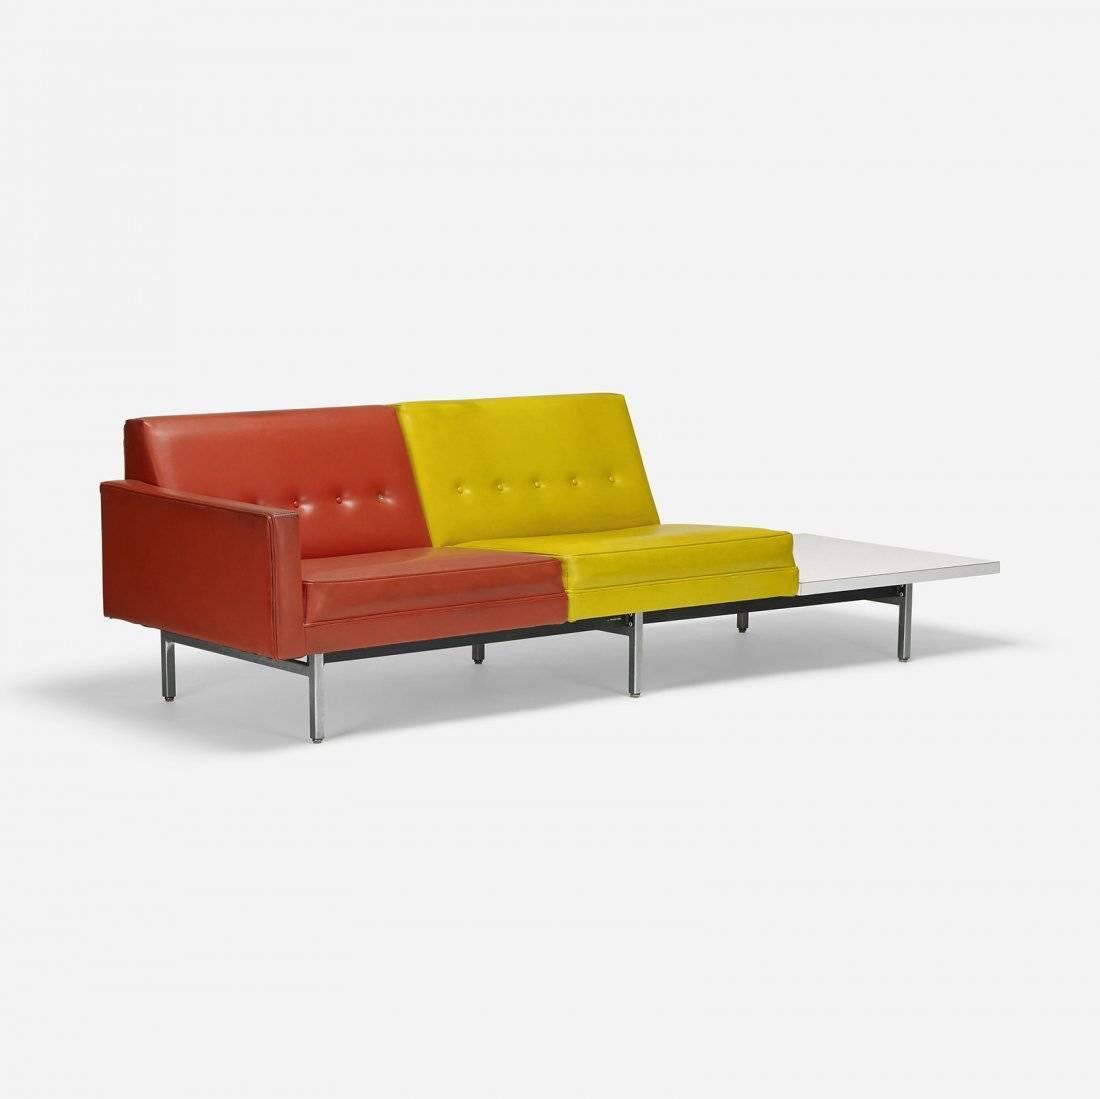 George nelson steel frame modular sofa herman miller 1956 at 1stdibs Steel frame sofa